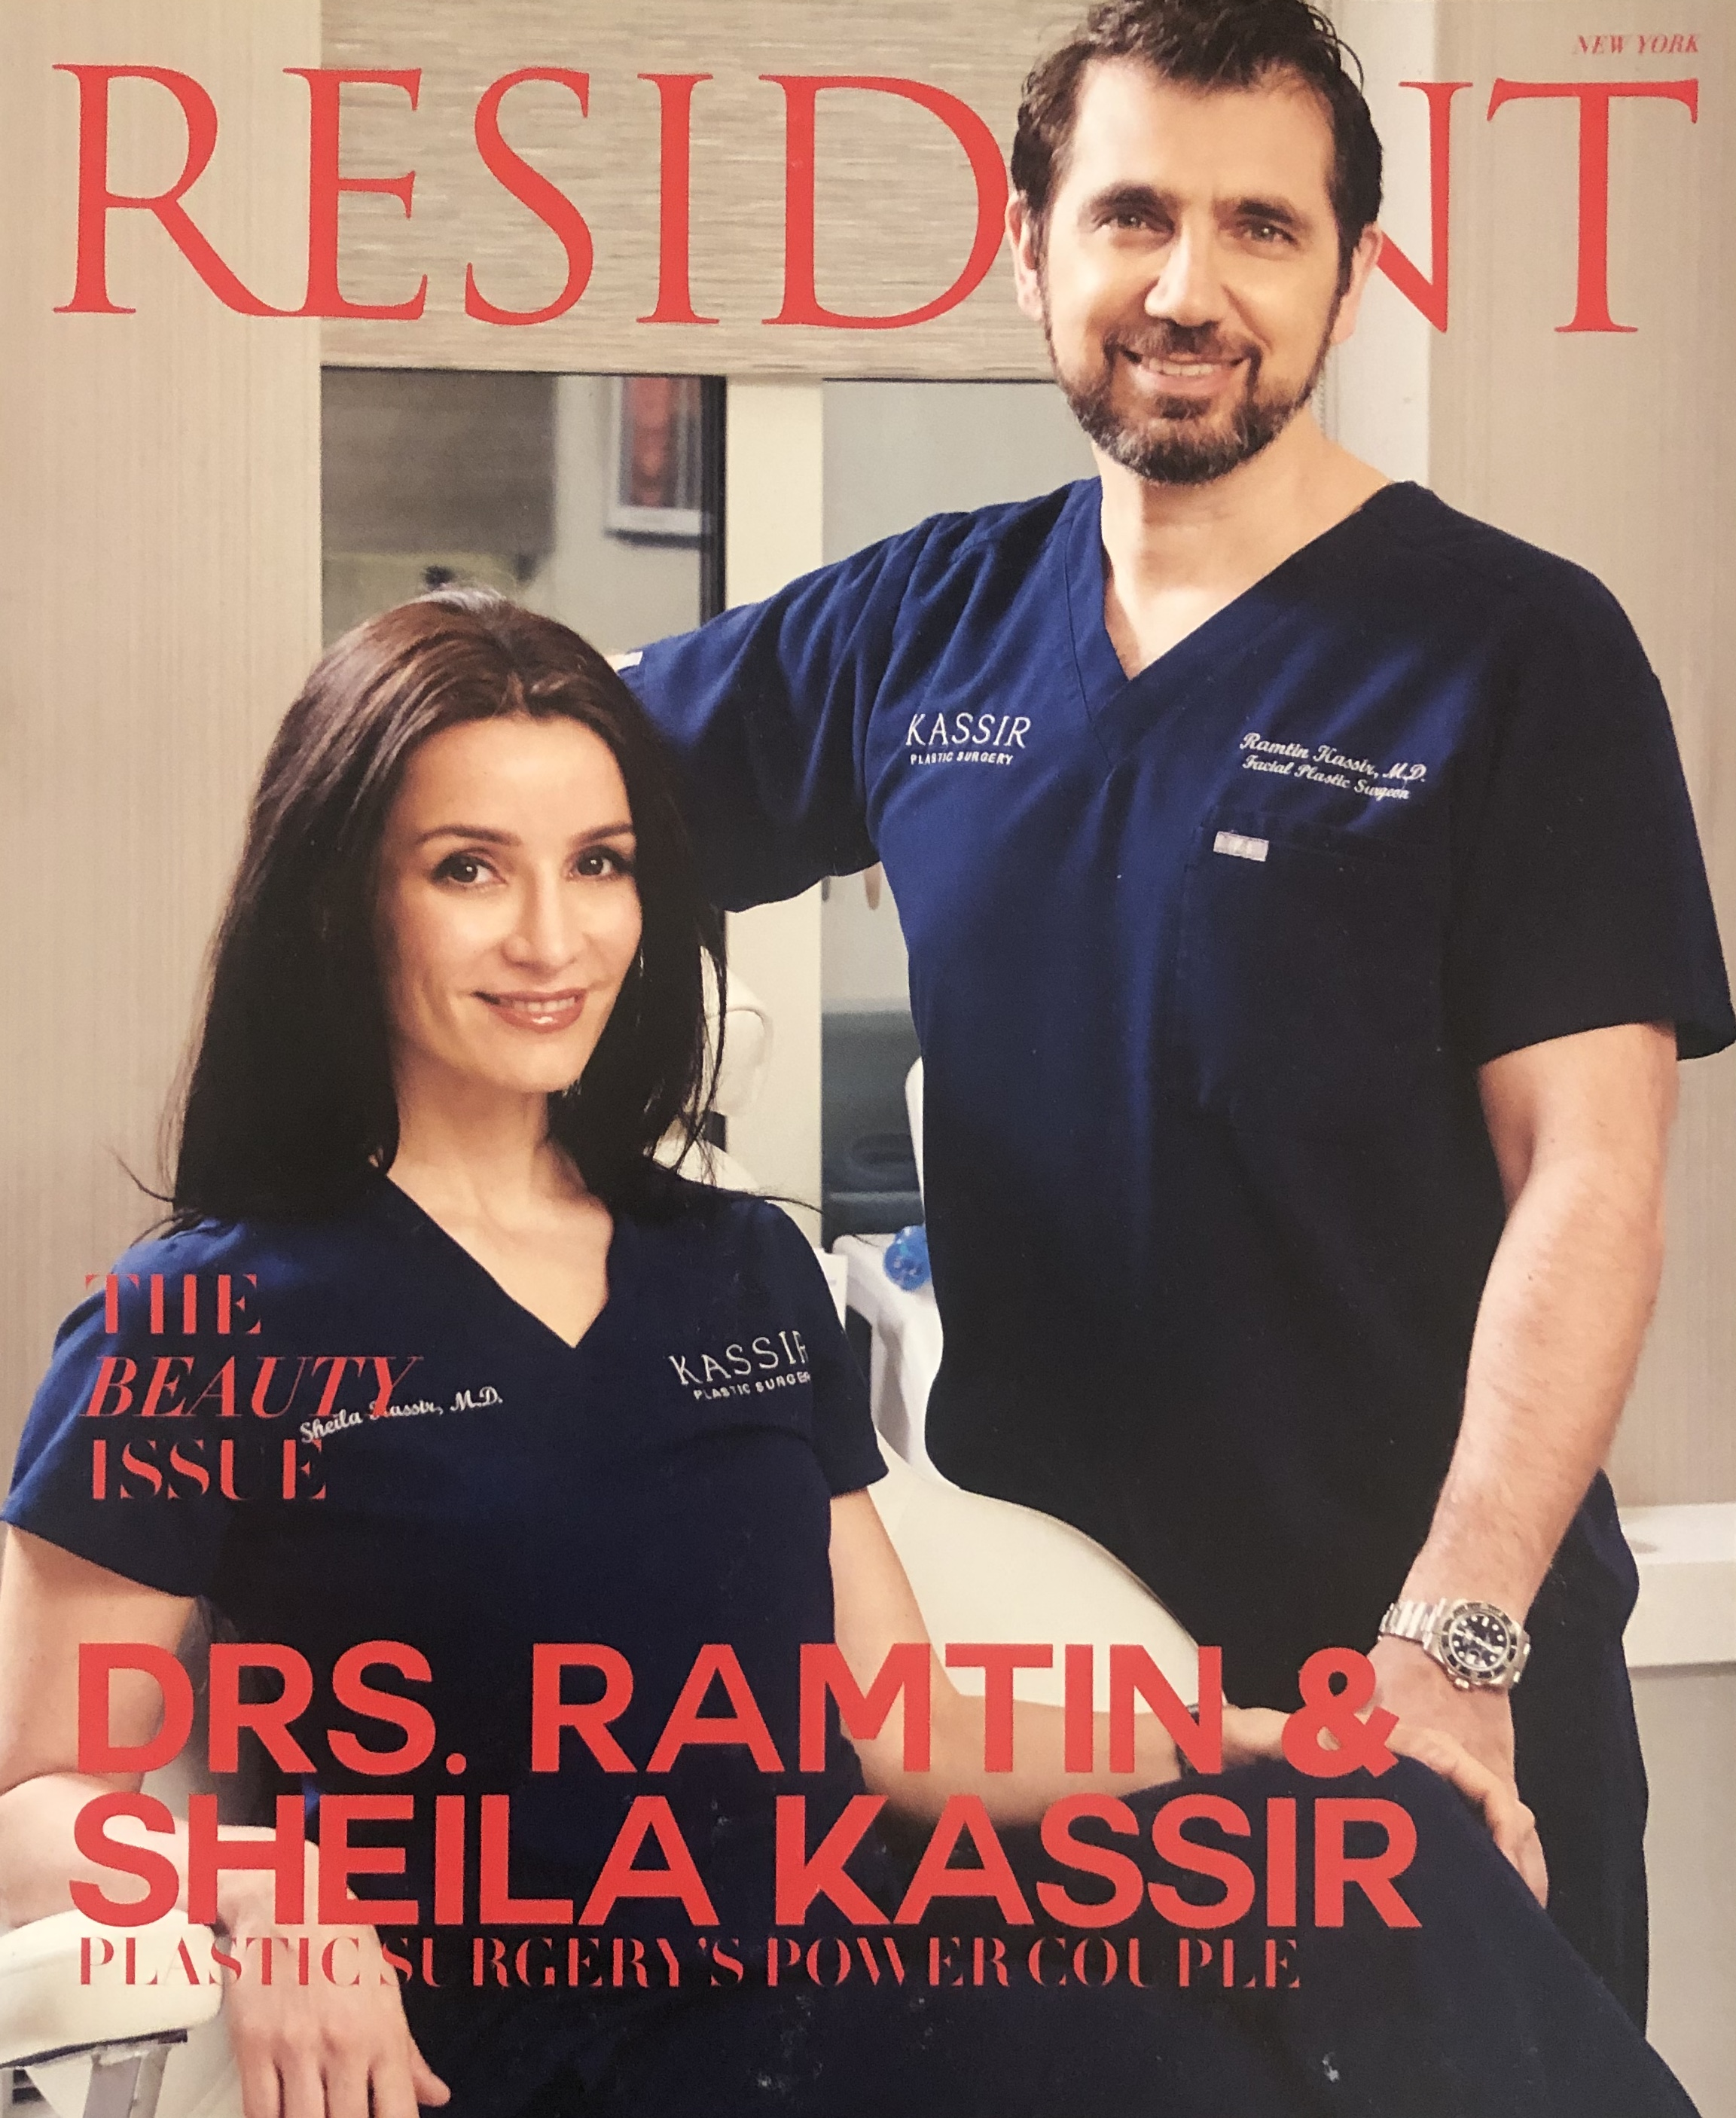 Resident Magazine / The Beauty Issue - Plastic Surgery's Power Couple Drs. Ramtin and Sheila Kassir discusses their state of the art medical spa right here in the heart of New York City. In the article the doctors highlight the latest technologies including Exilis, EmSculpt, Emsella and Non Surgical Treatments such as Non Surgical Rhinoplasty, Non Surgical Lip Augmentation and Non Surgical Facial Rejuvination.